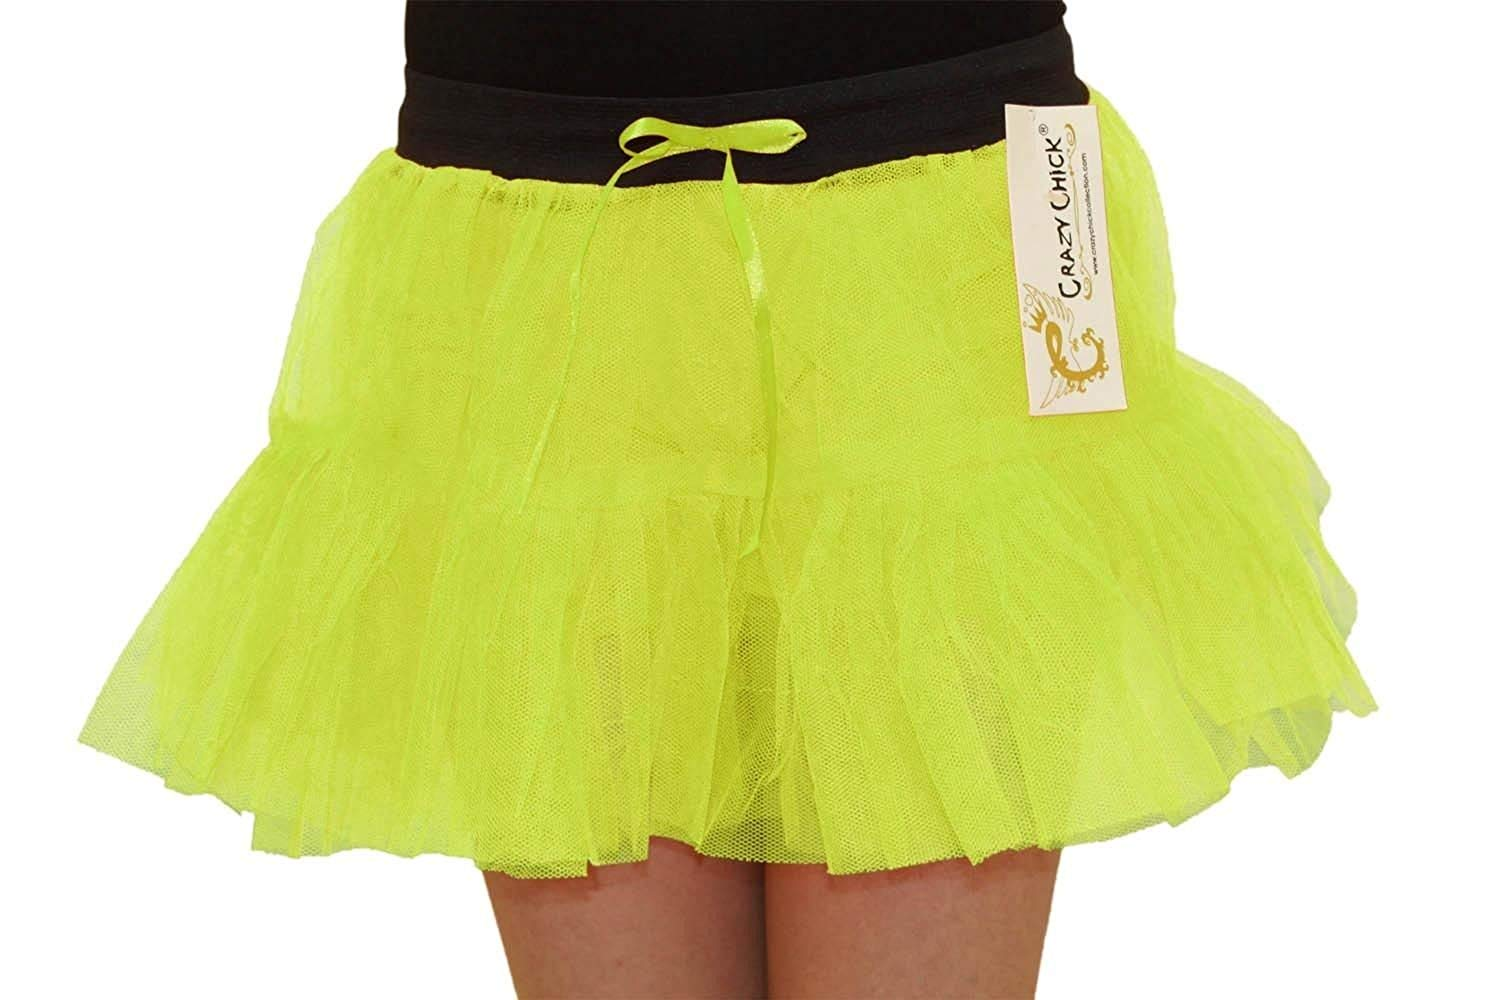 97977e2706 Get Quotations · Rimi Hanger Womens 1980s 2 Layers Neon Colour Tutu Skirts  Ladies Hen Party Dance Wear Skirt